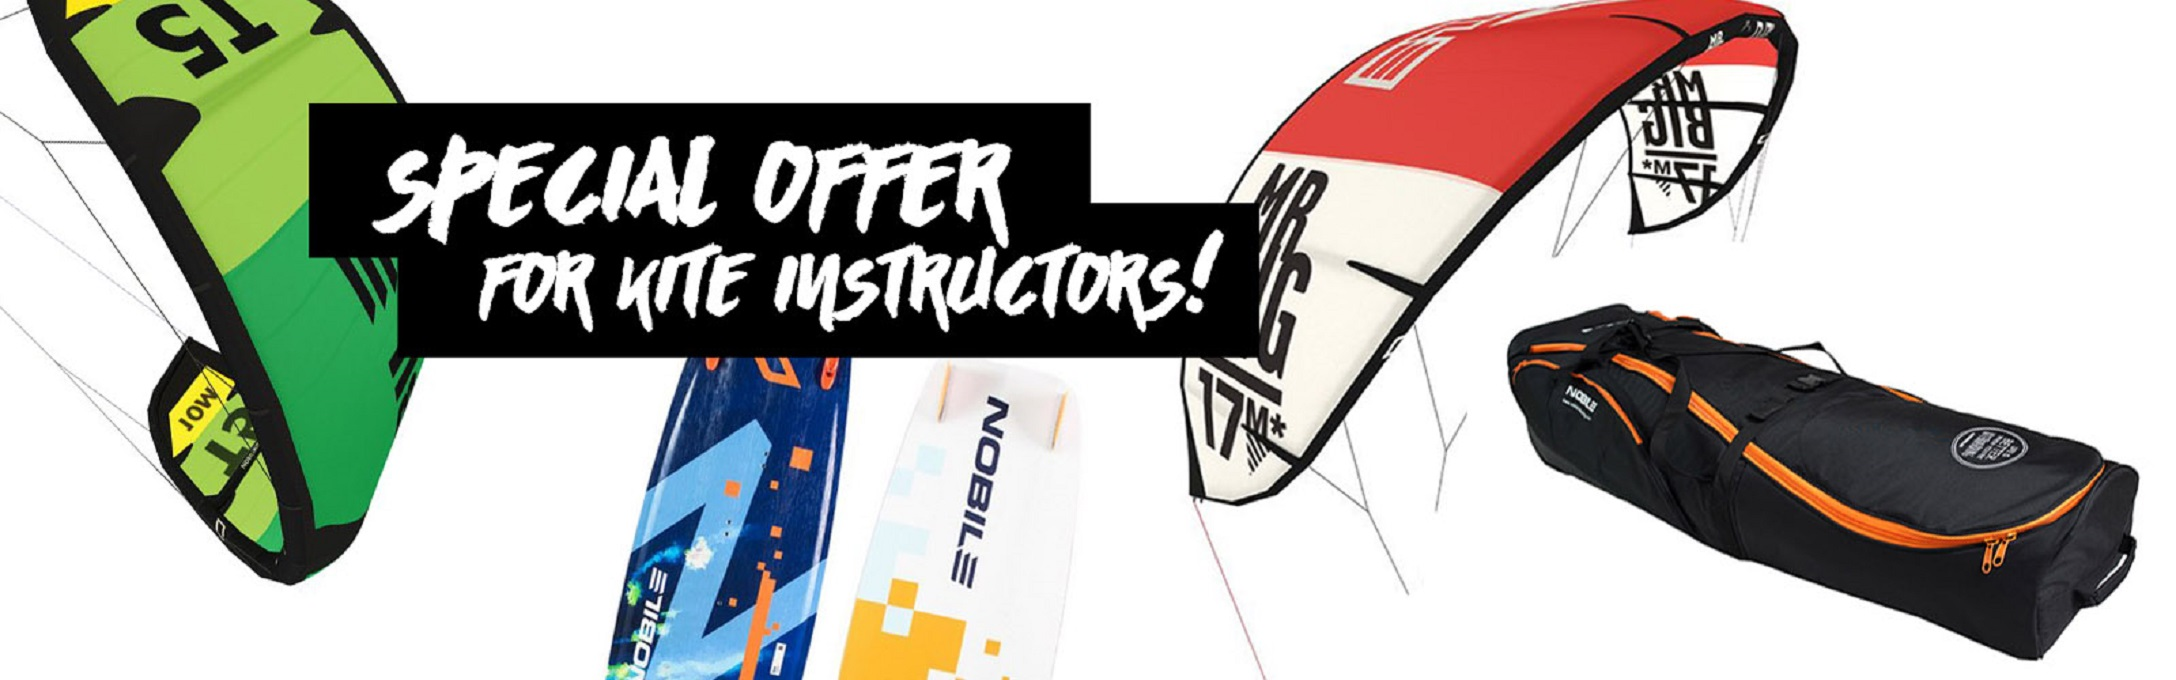 Instructor kite - promo (HP)